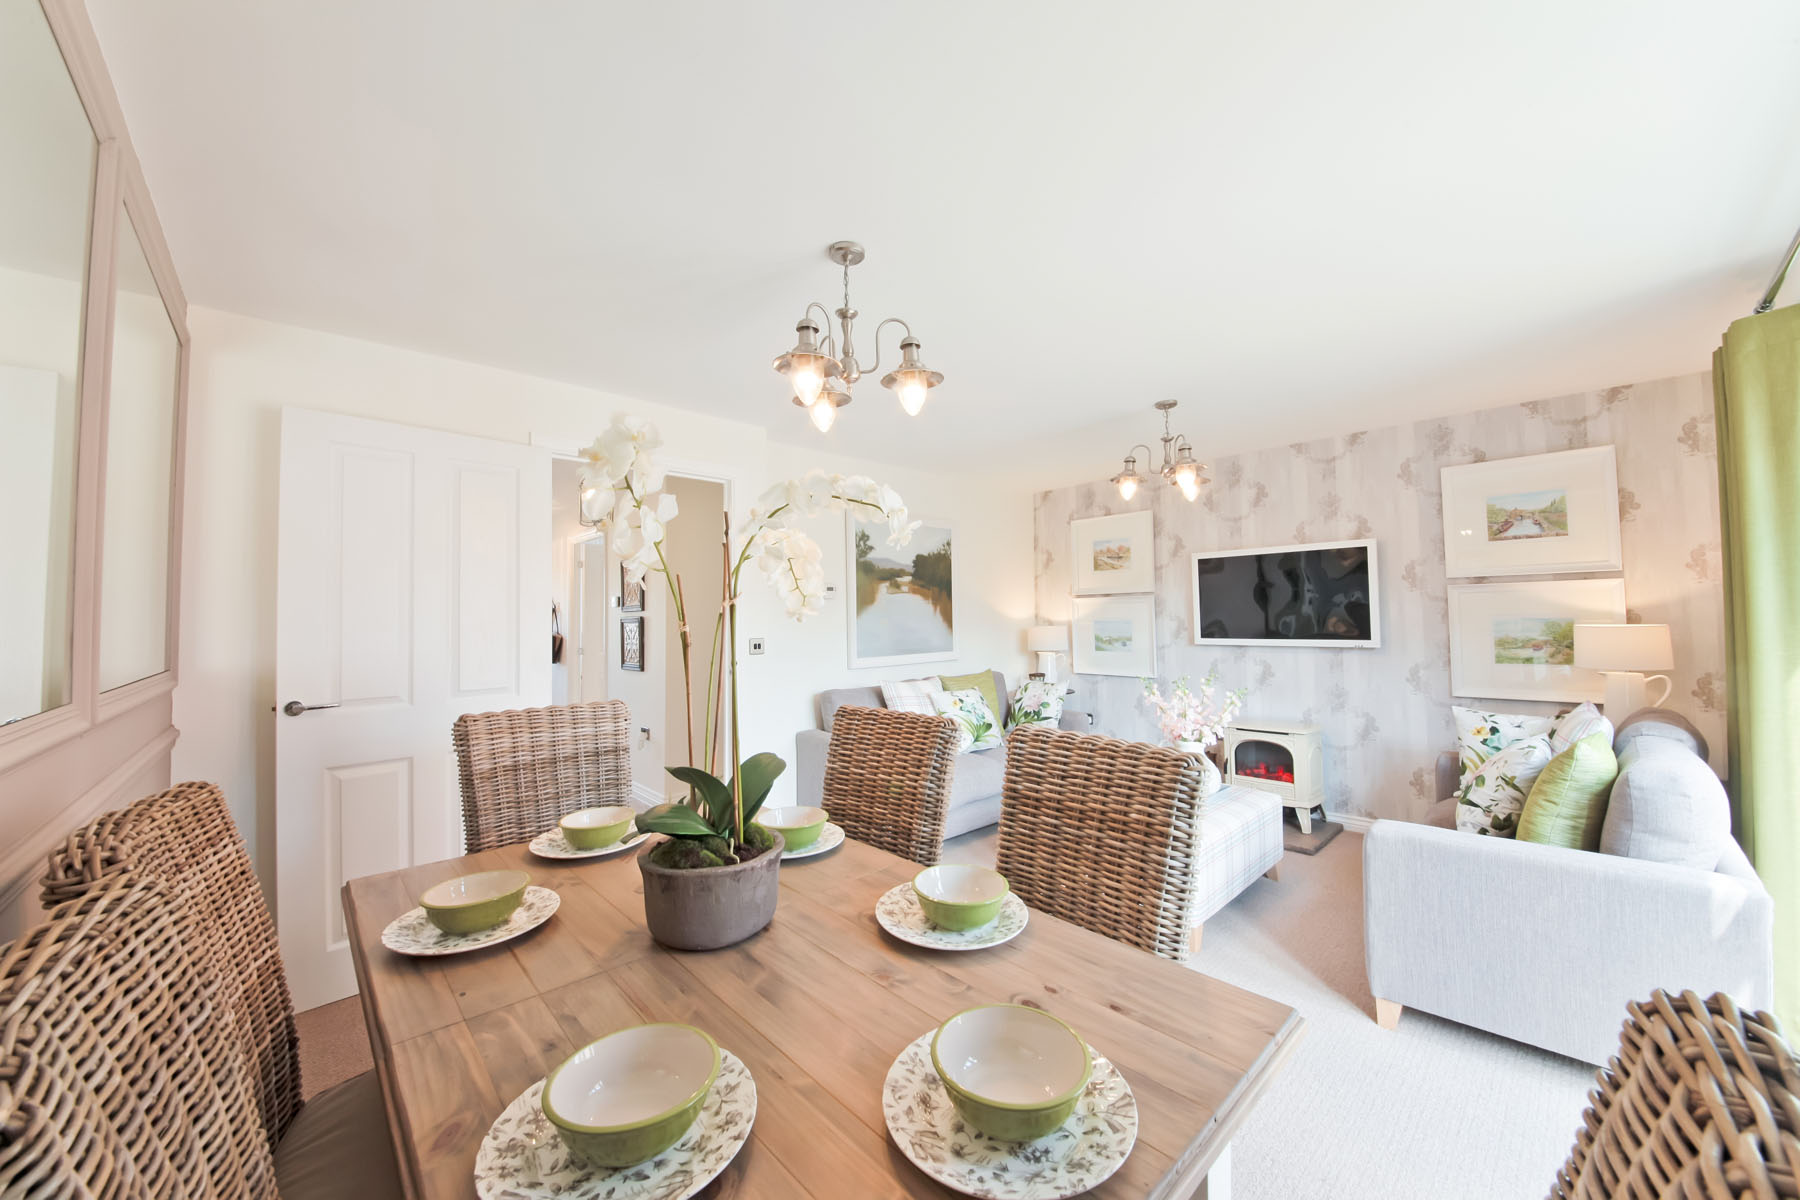 TW Exeter - Cranbrook - Harton example living room